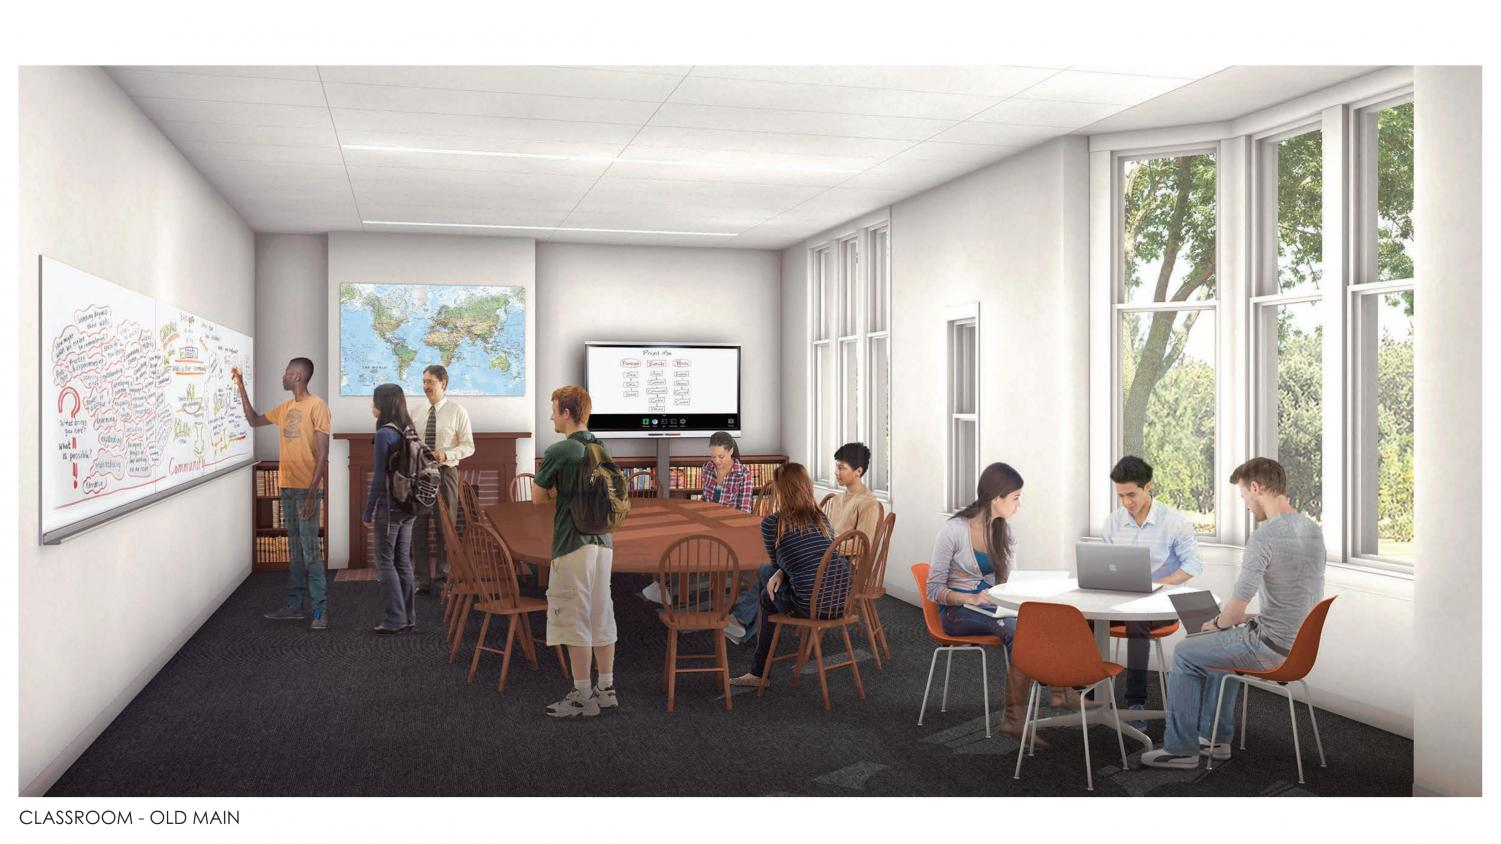 A+rendering+of+what+the+Old+Main+classrooms+may+look+like.